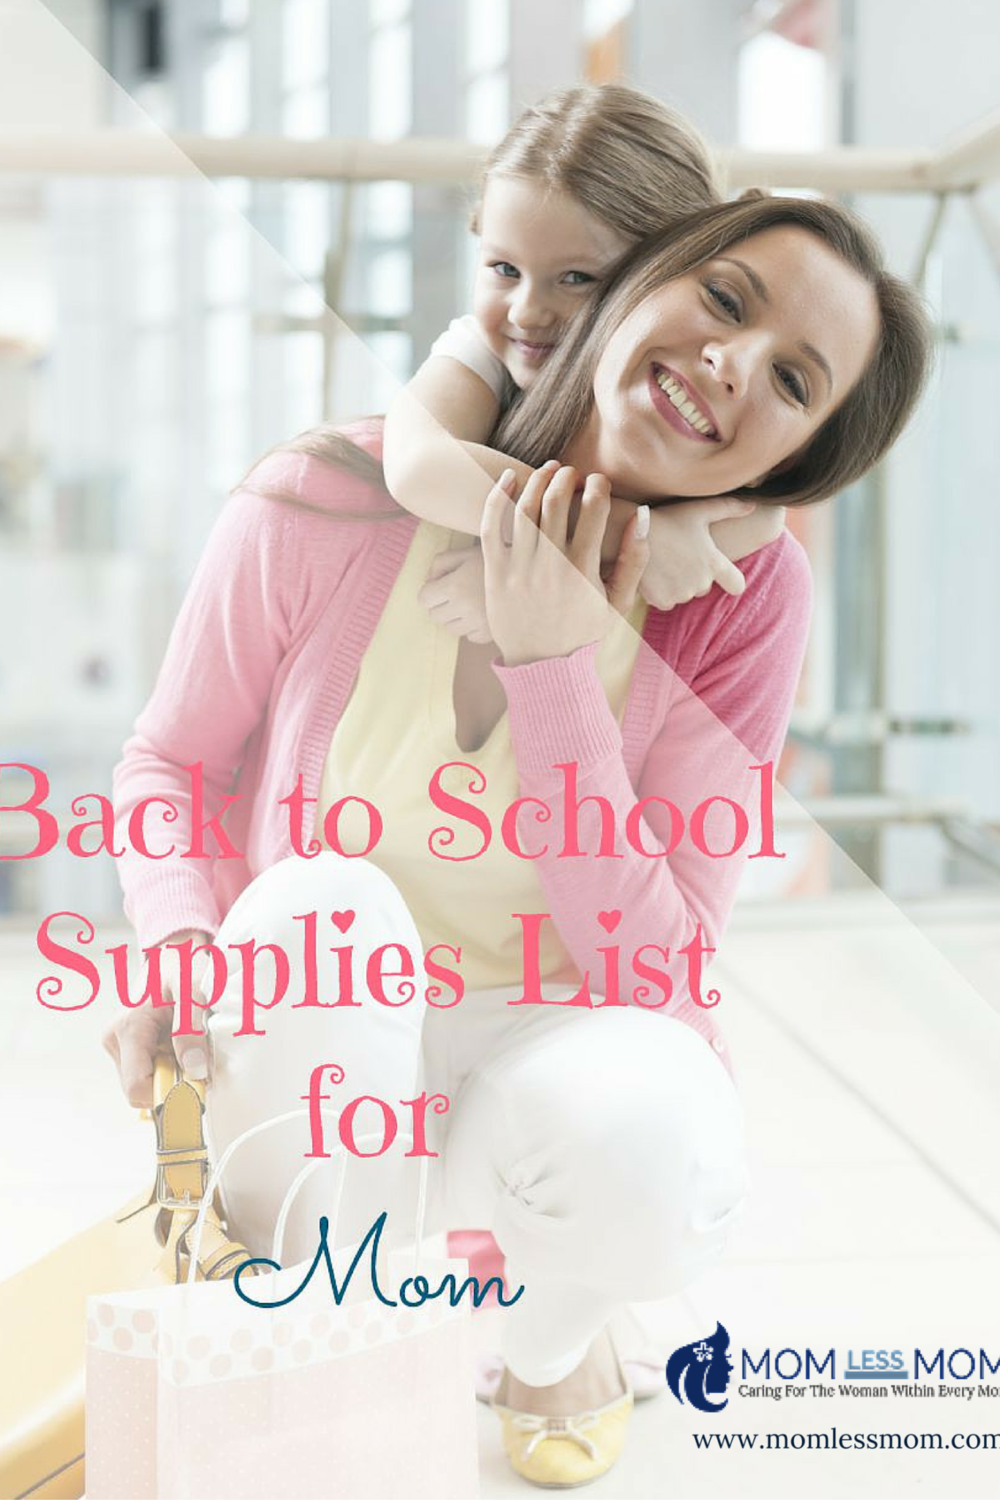 Back to School Supplies List for Moms